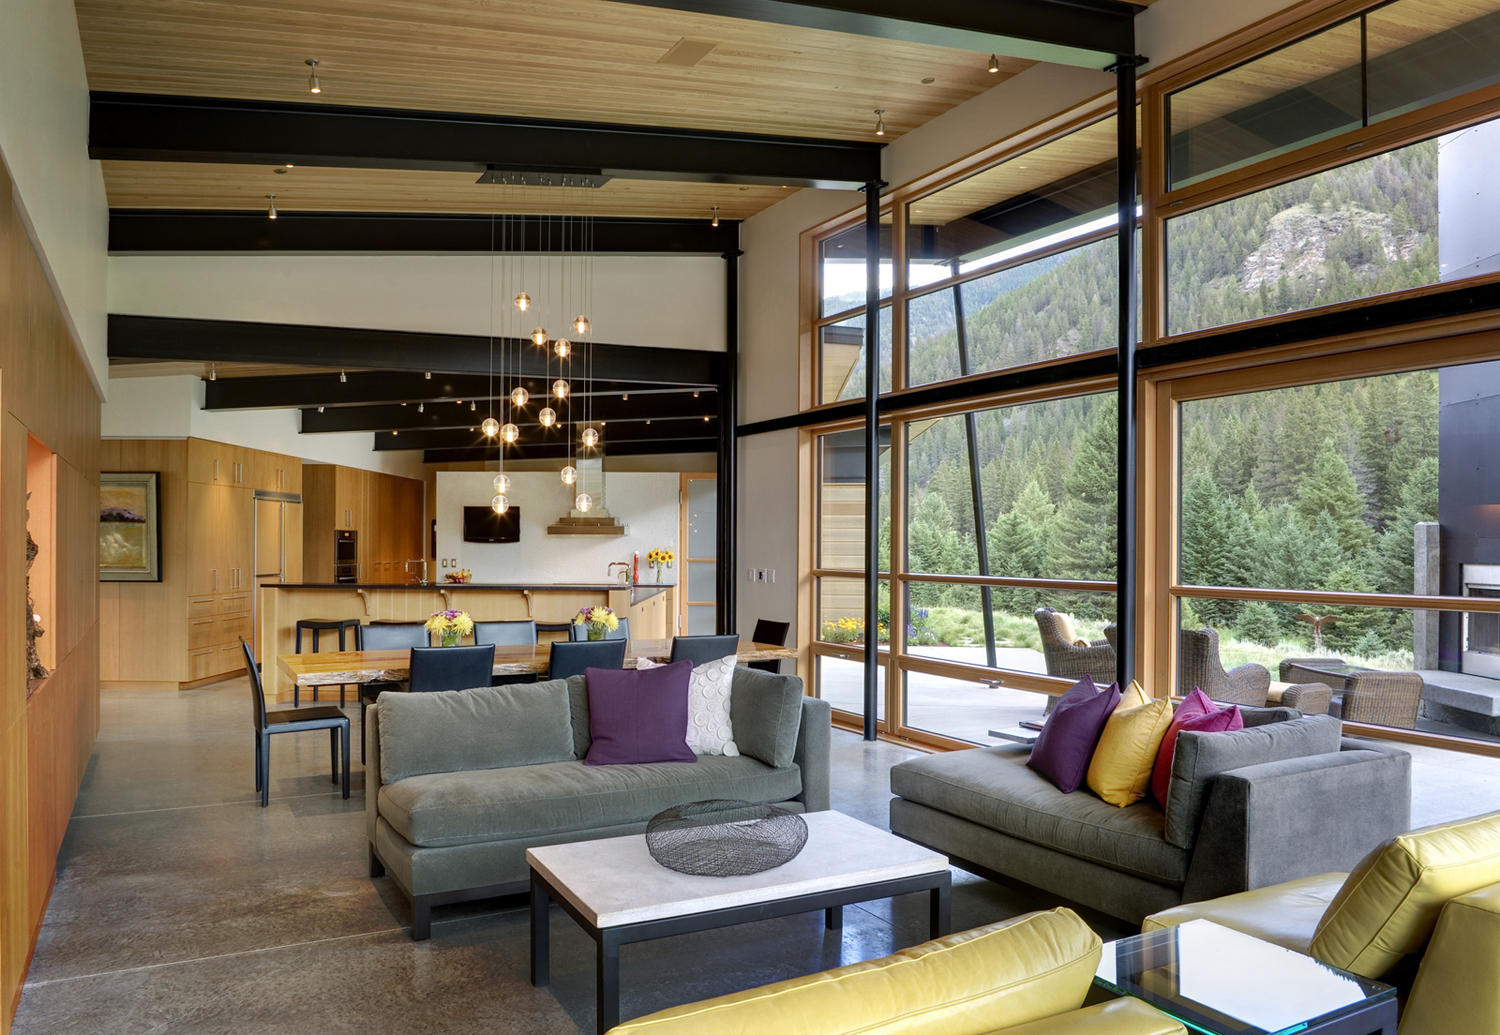 Bank Design Home.Montana River Bank Modern Sustainable Home Idesignarch